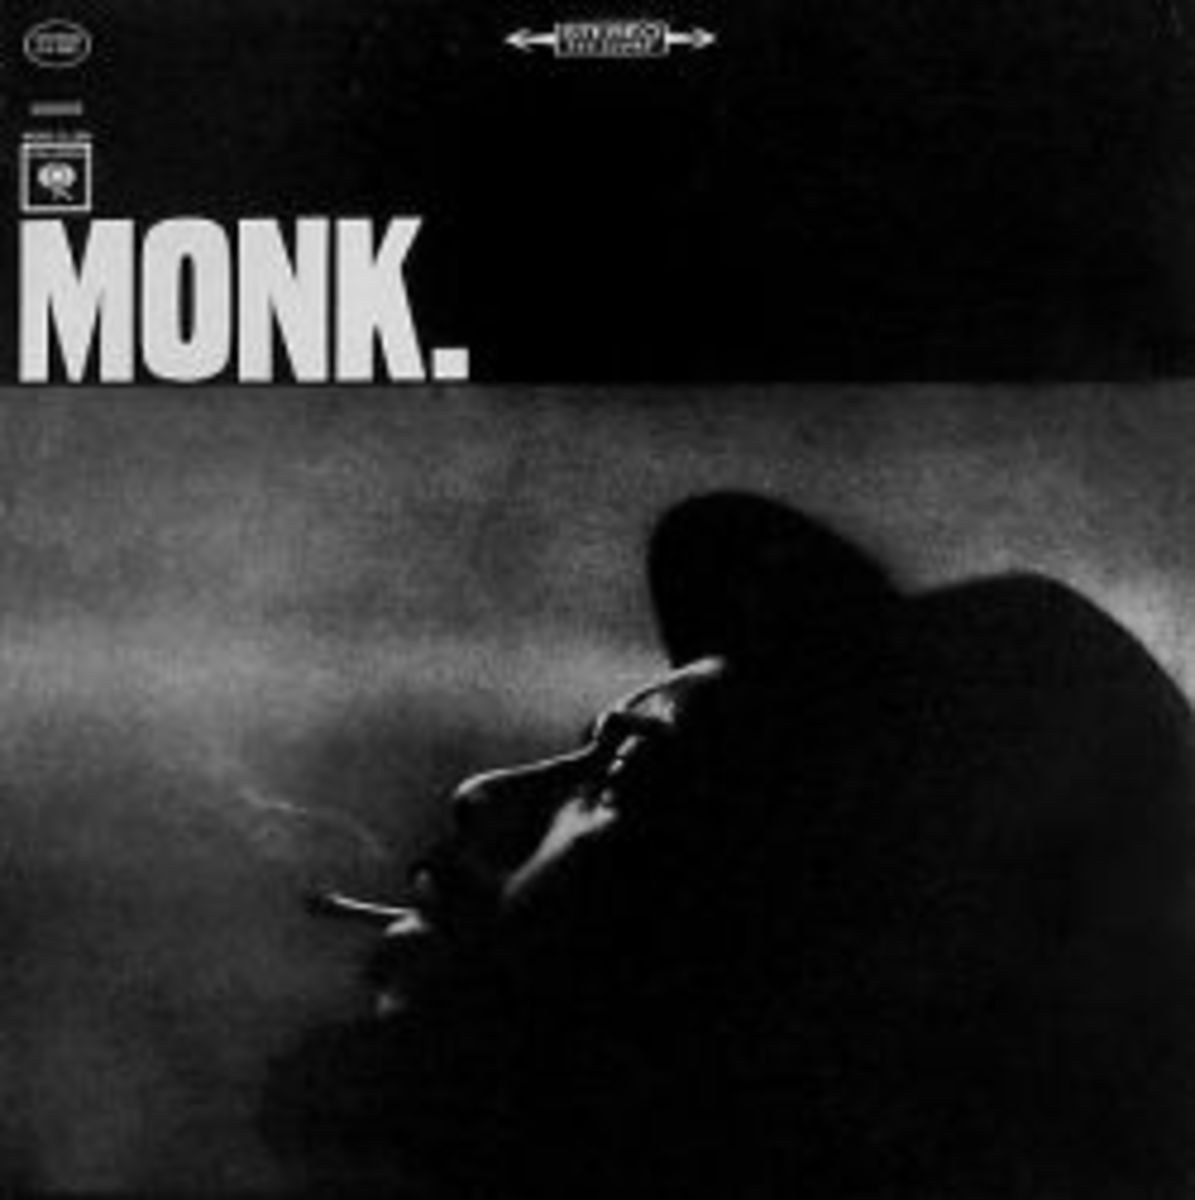 "Thelonious Monk ""Monk"" Columbia CS 9091  12"" LP (1964) Album Cover Design by Bob Cato, Photo by W. Eugene Smith"